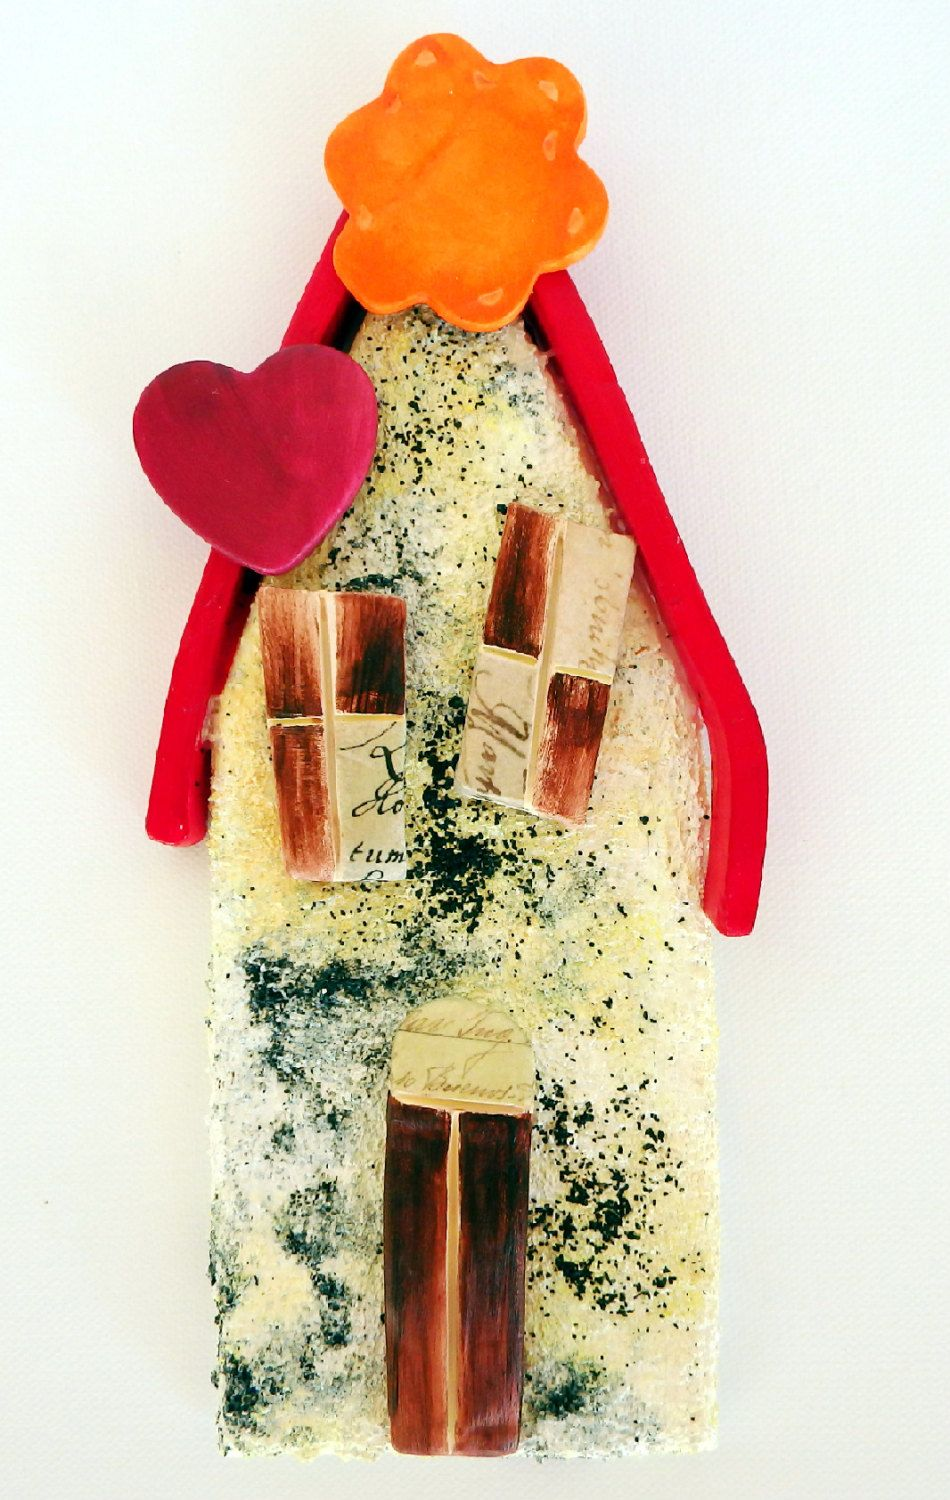 Wall hanging house decoration pottery house handmade gift gypsum ...